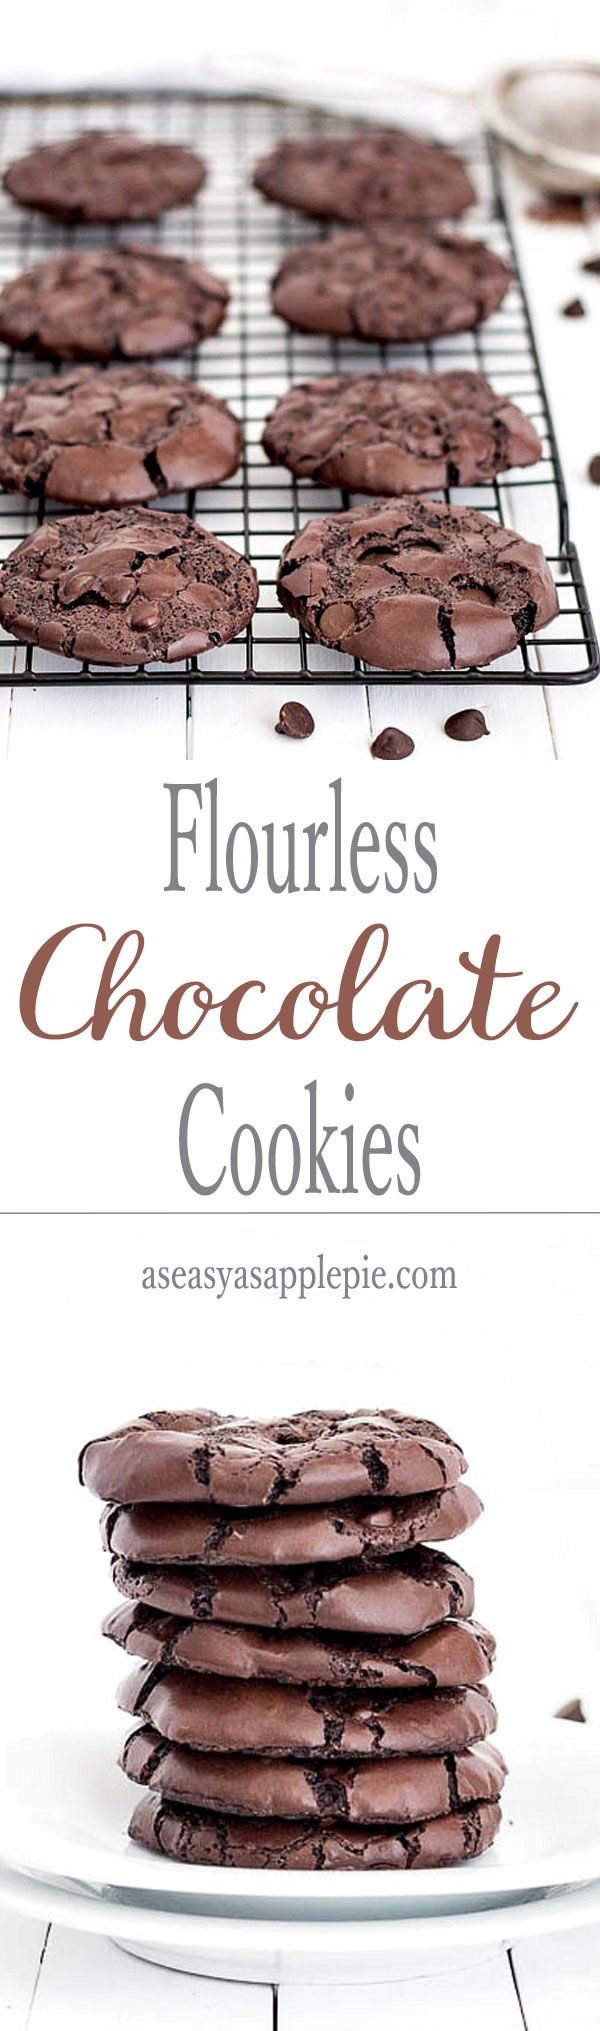 An easy recipe for flourless, no butter, gluten-free, chocolate cookies. They taste like a rich and fudgy brownie!